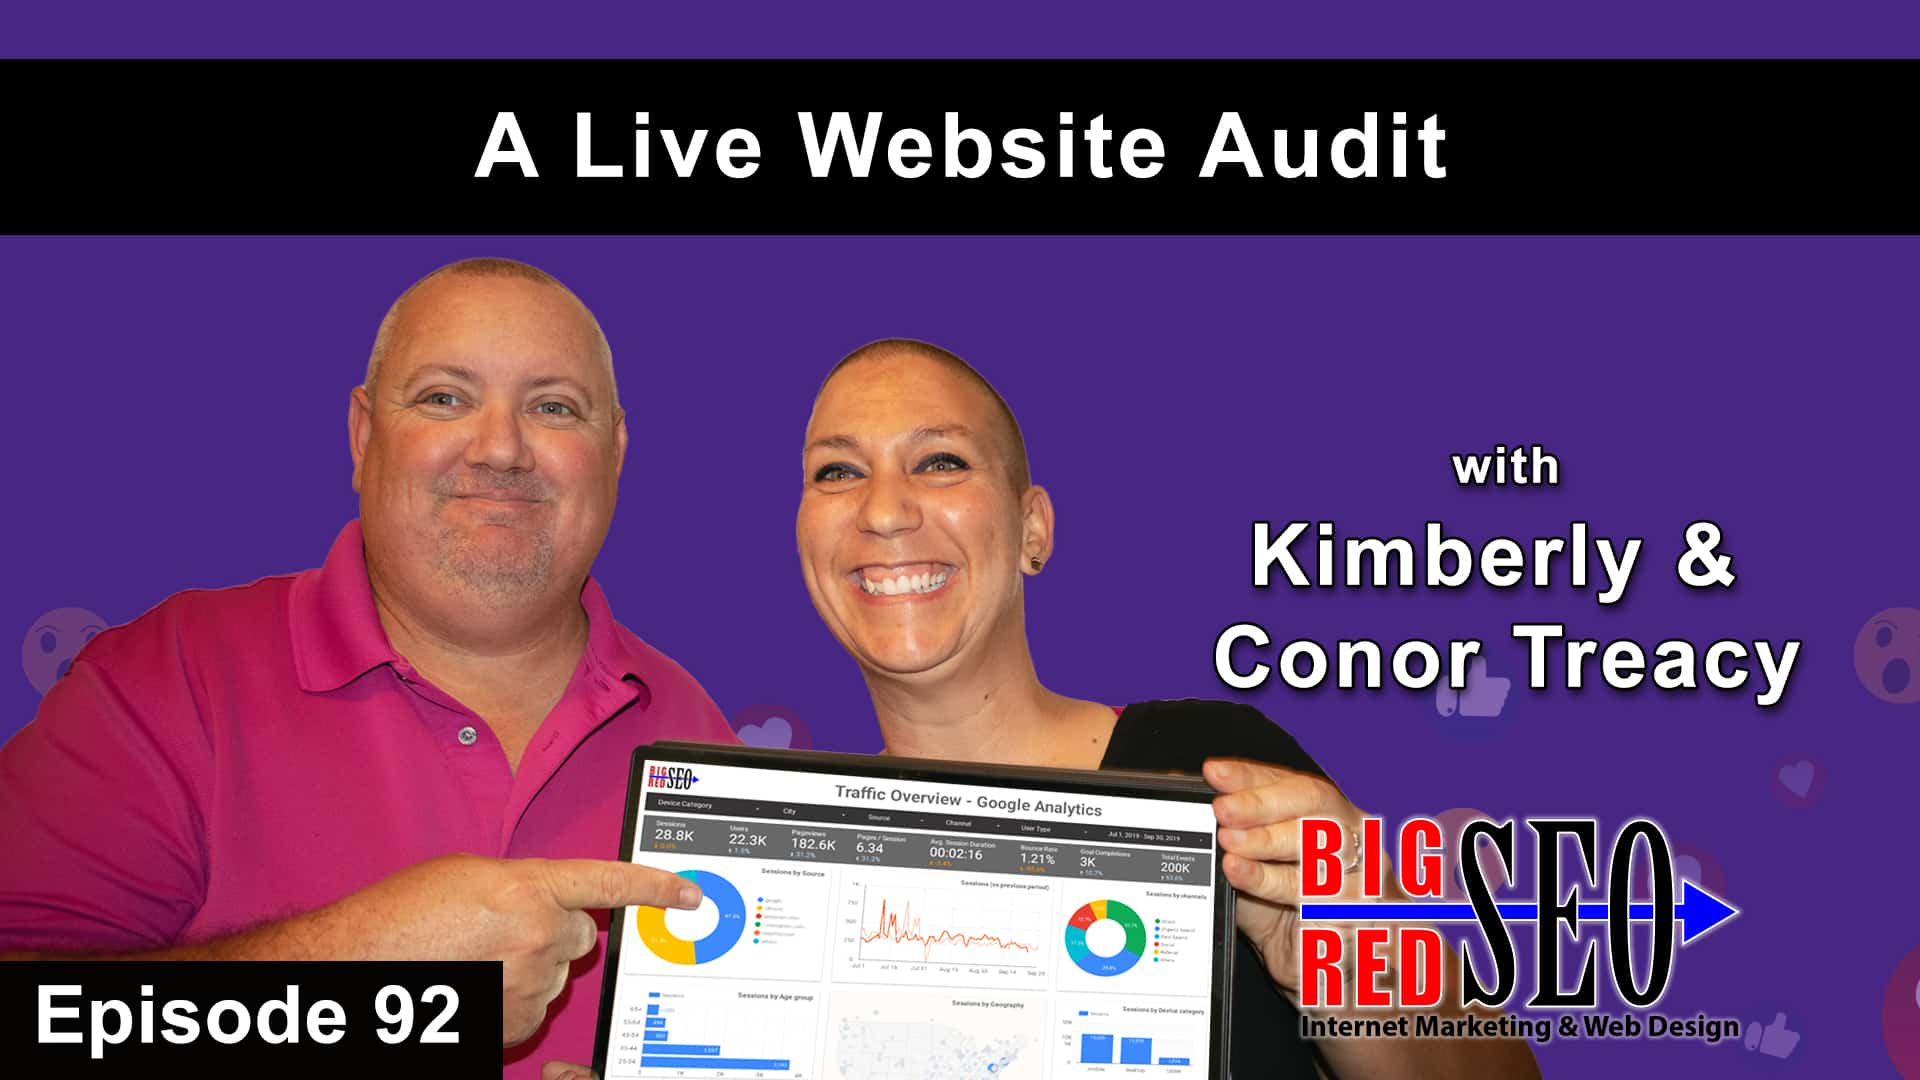 Free Website Audit - Video Walkthrough - Episode 92